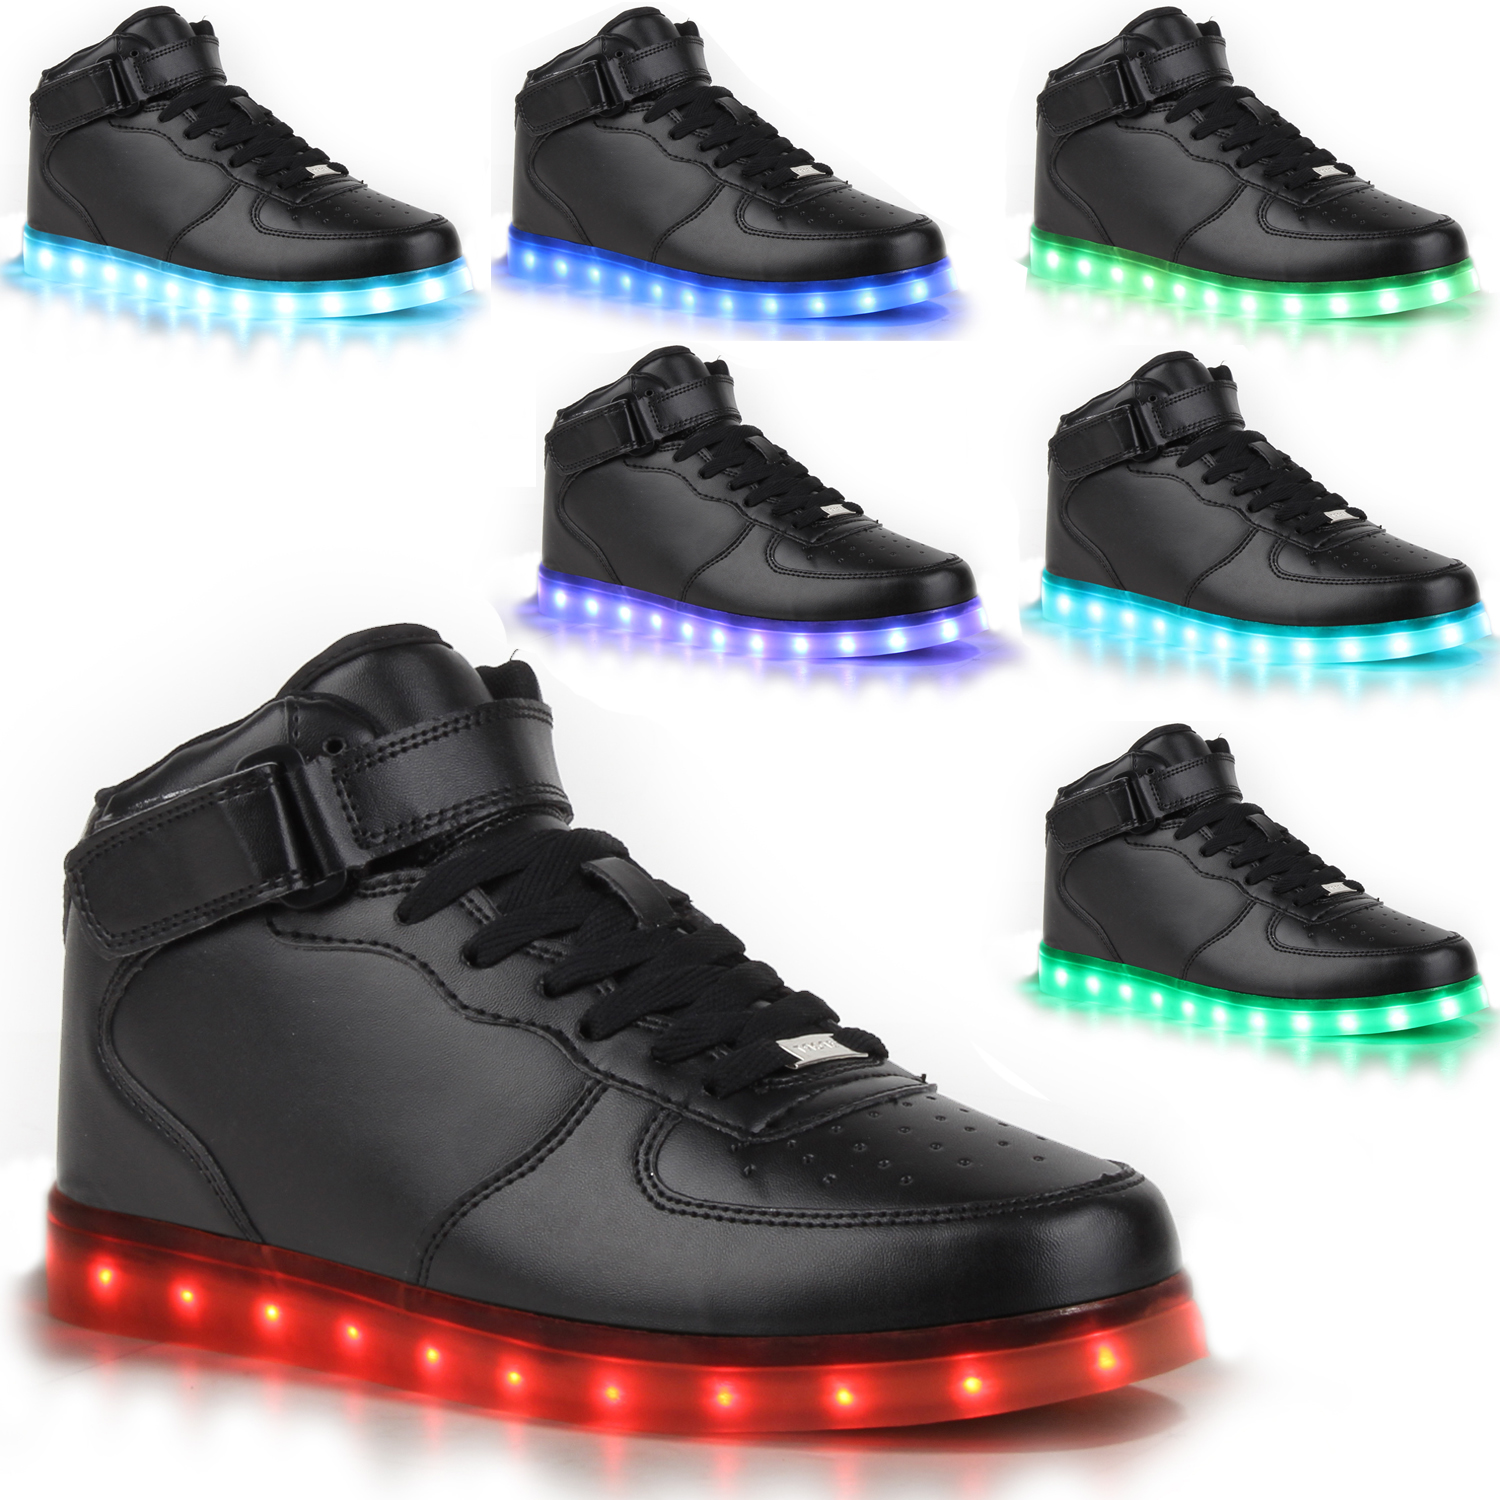 blinkende damen sneakers led light farbwechsel schuhe. Black Bedroom Furniture Sets. Home Design Ideas